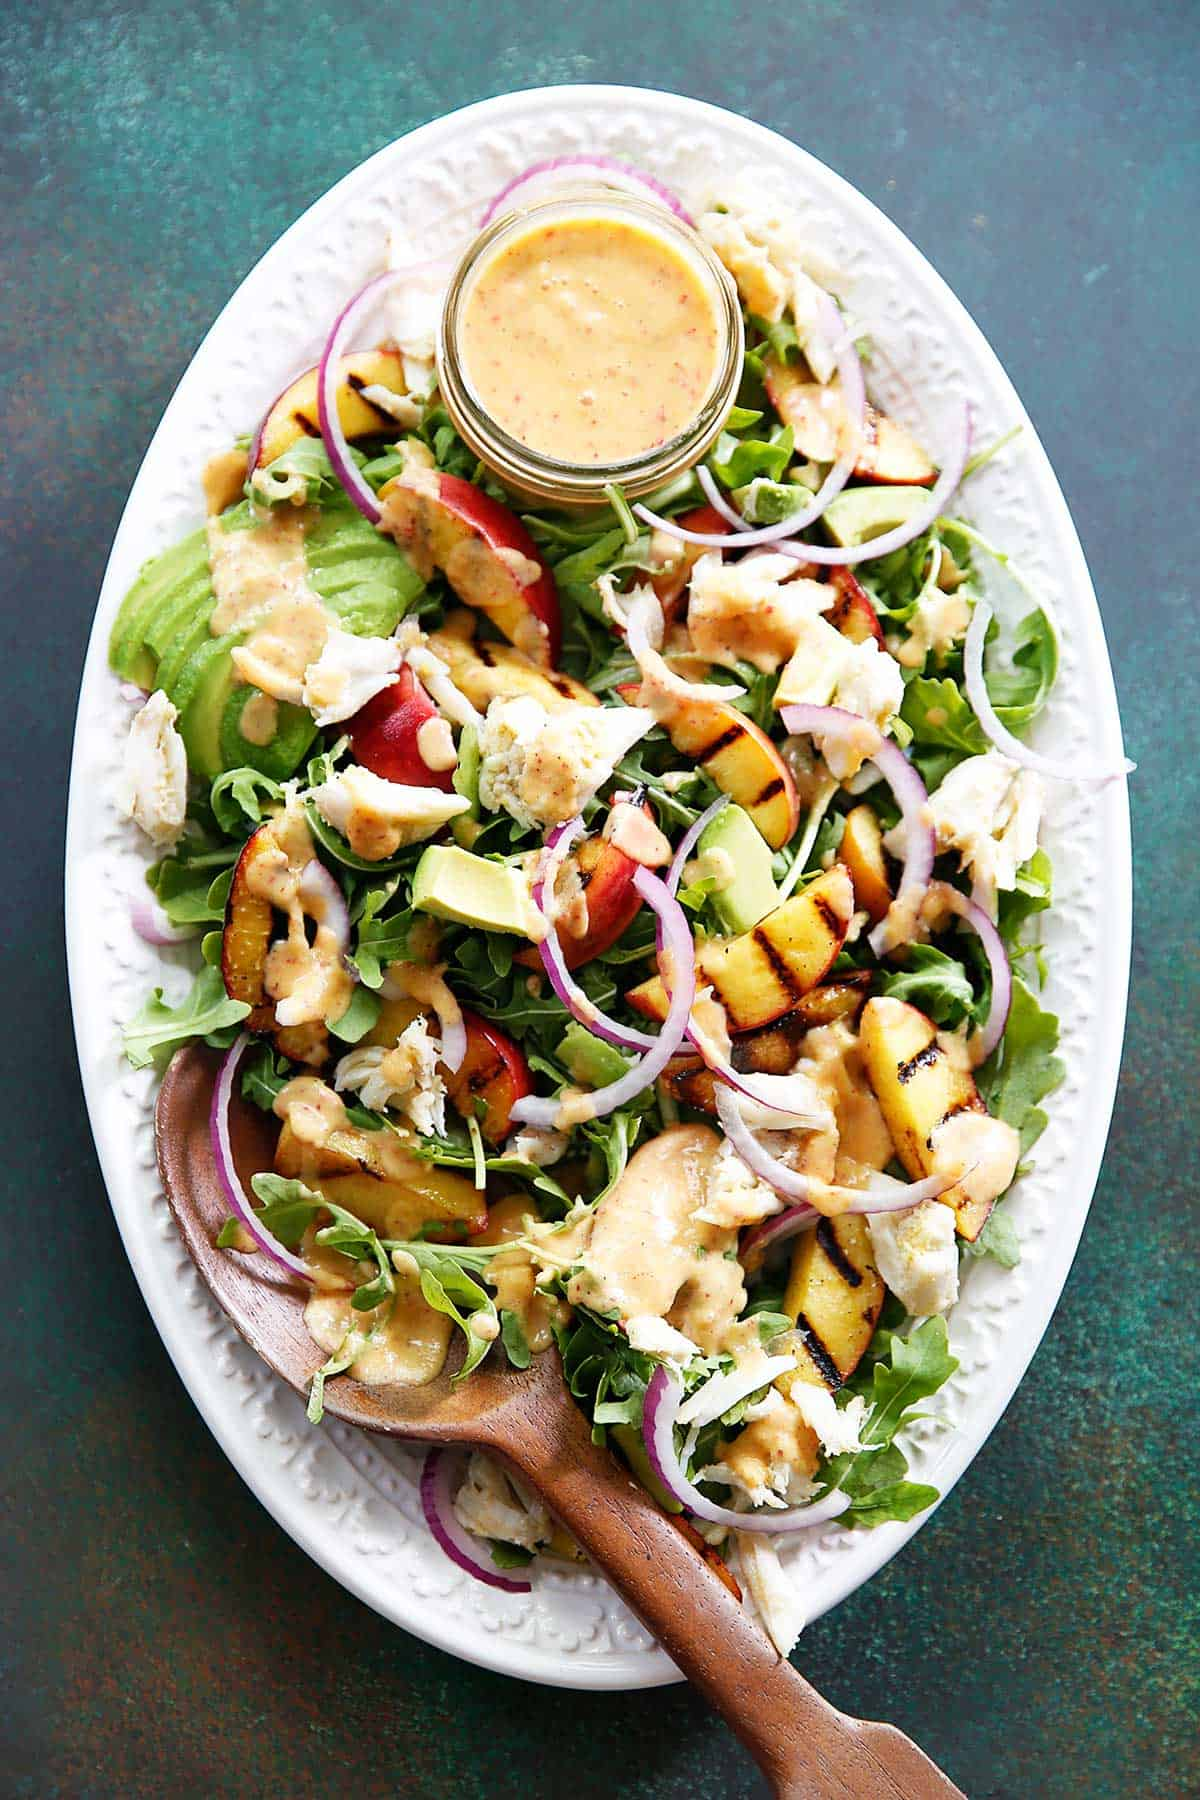 Grilled Peach, Avocado, and Crab Salad with Peach Dressing